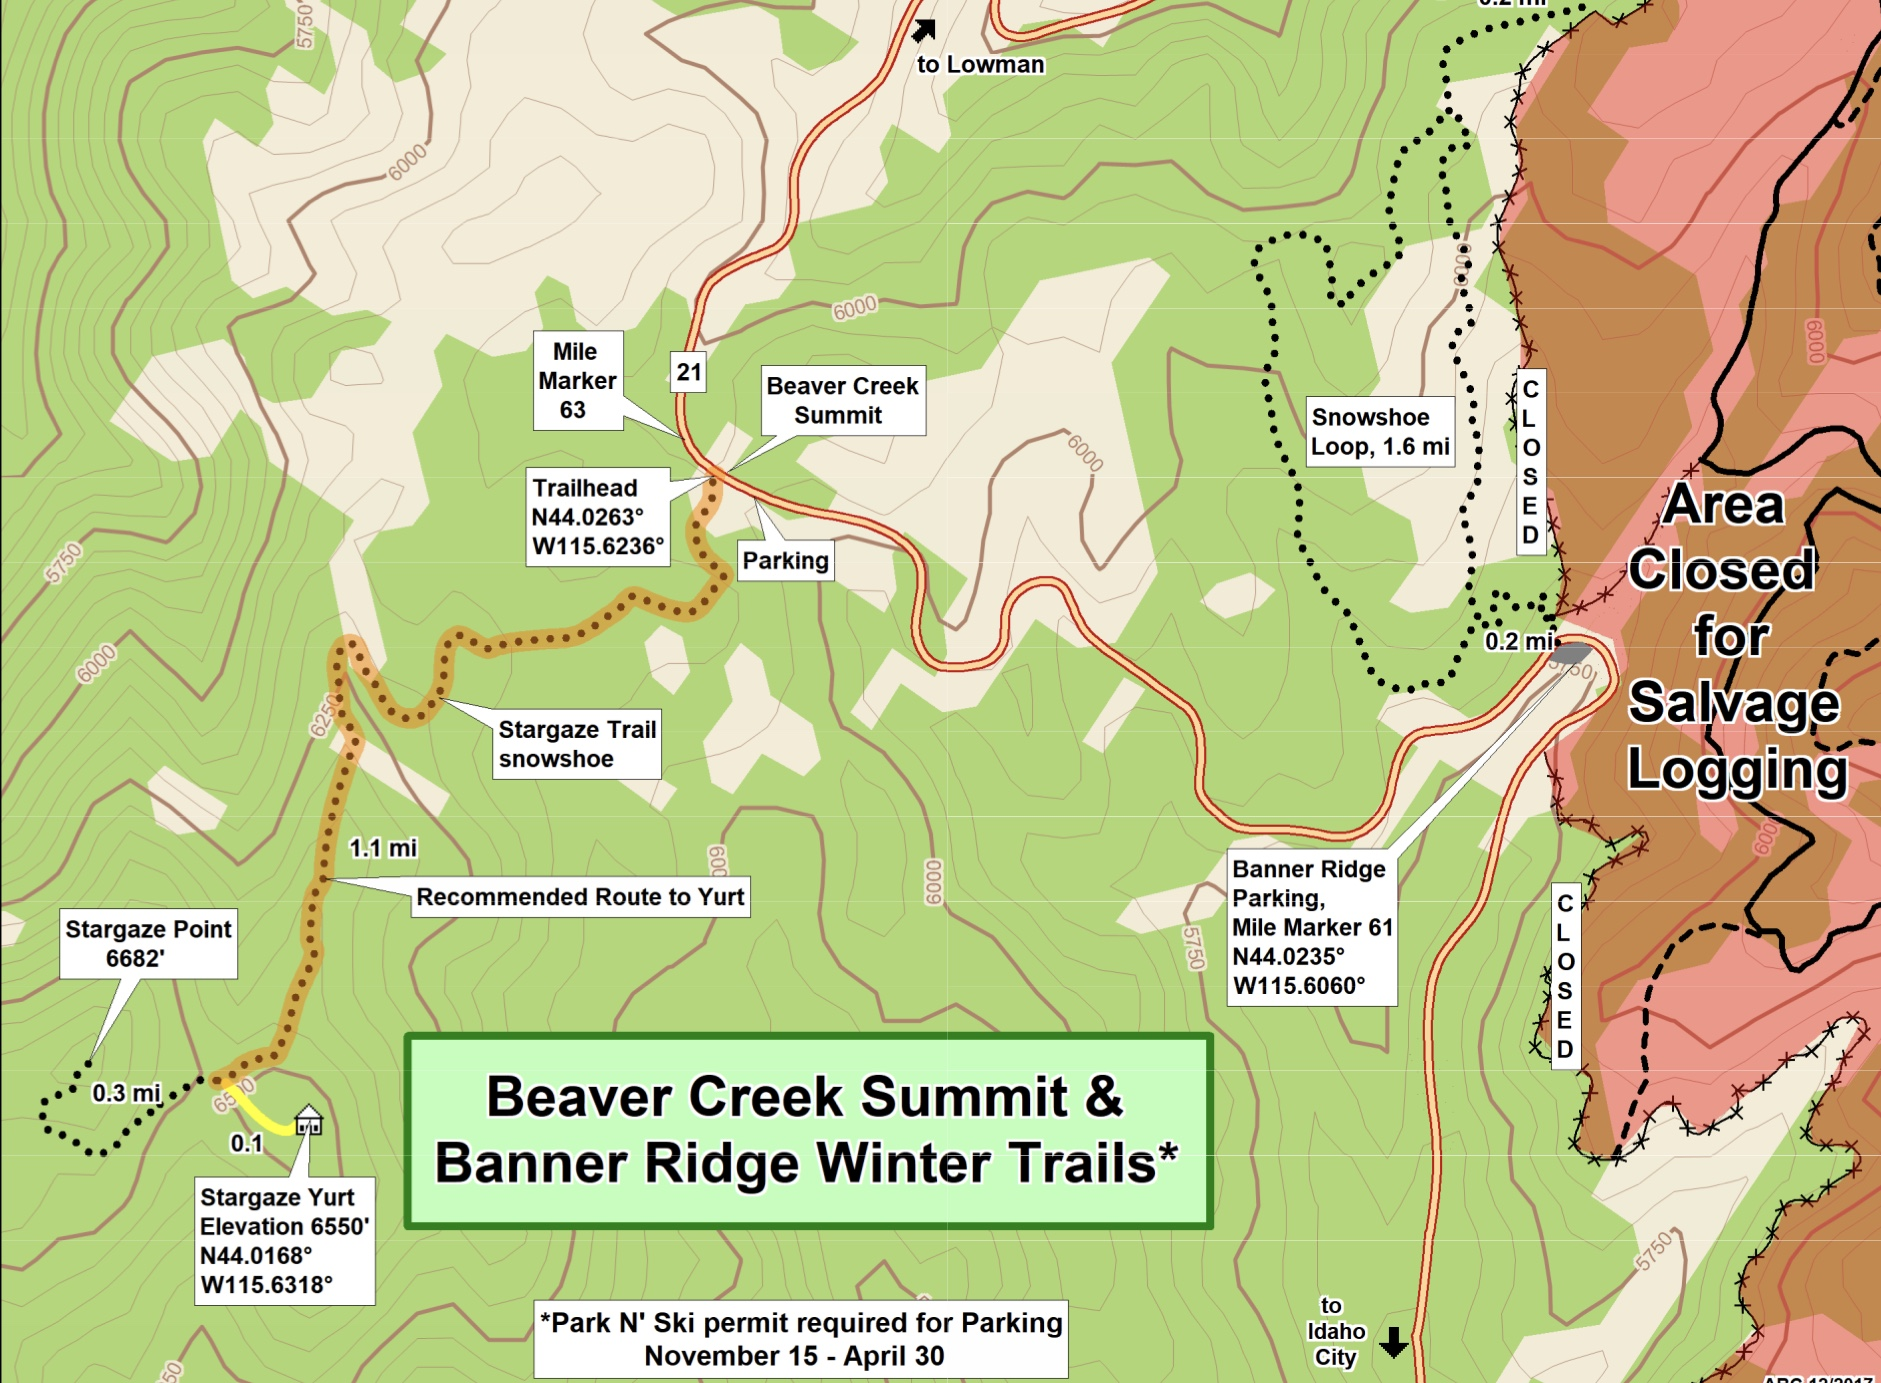 Idaho State Parks and Recreation map.